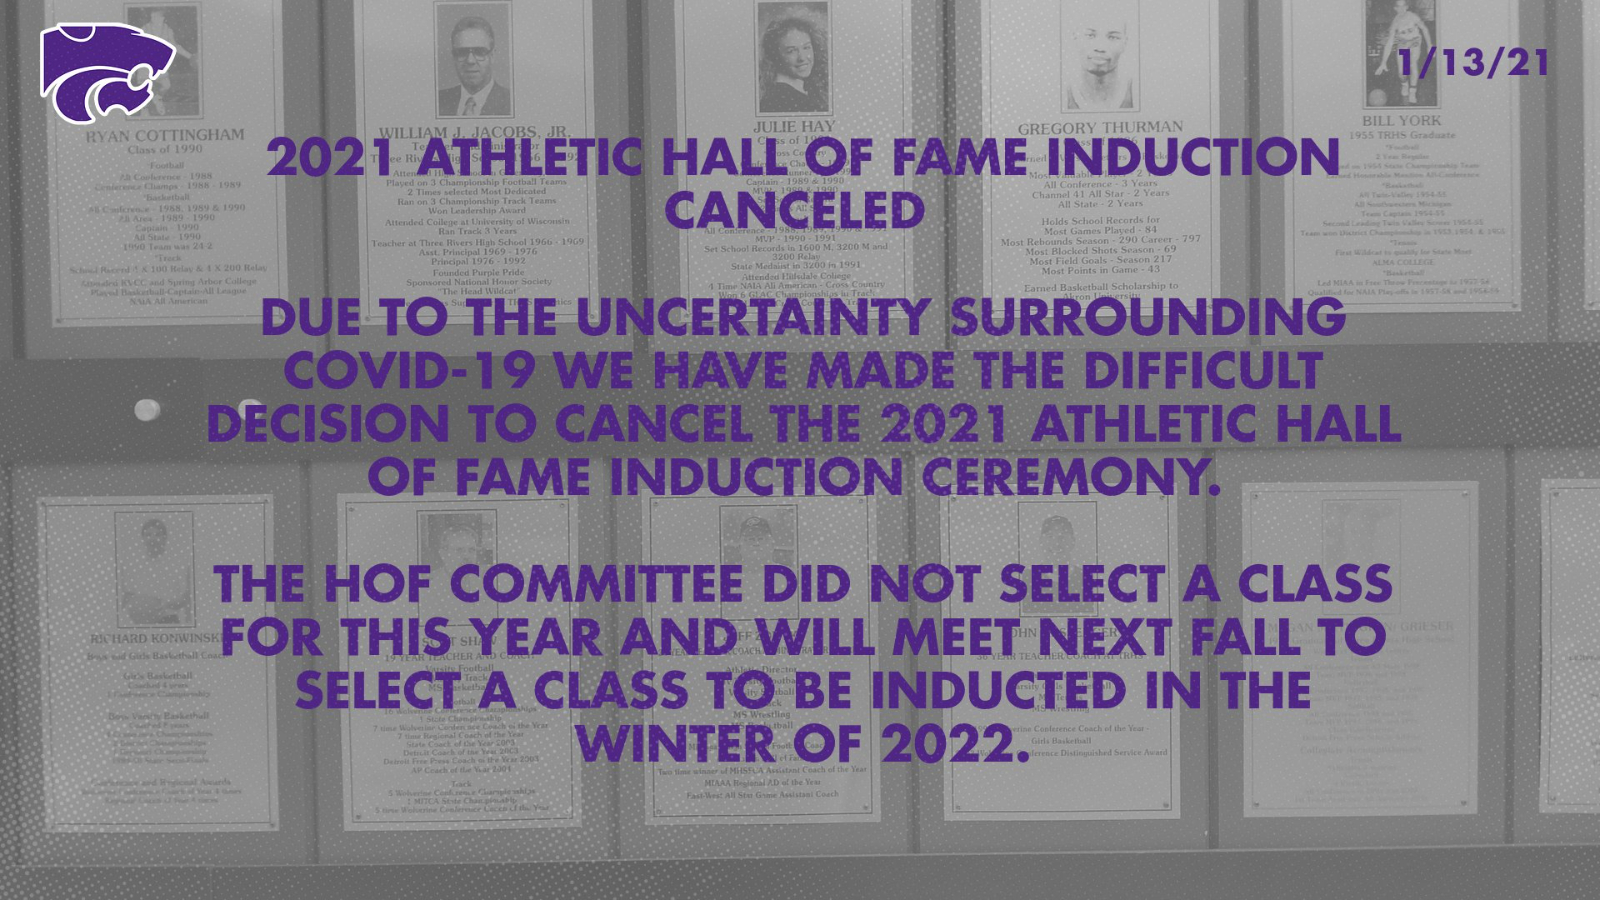 2021 Athletic Hall of Fame Induction Canceled